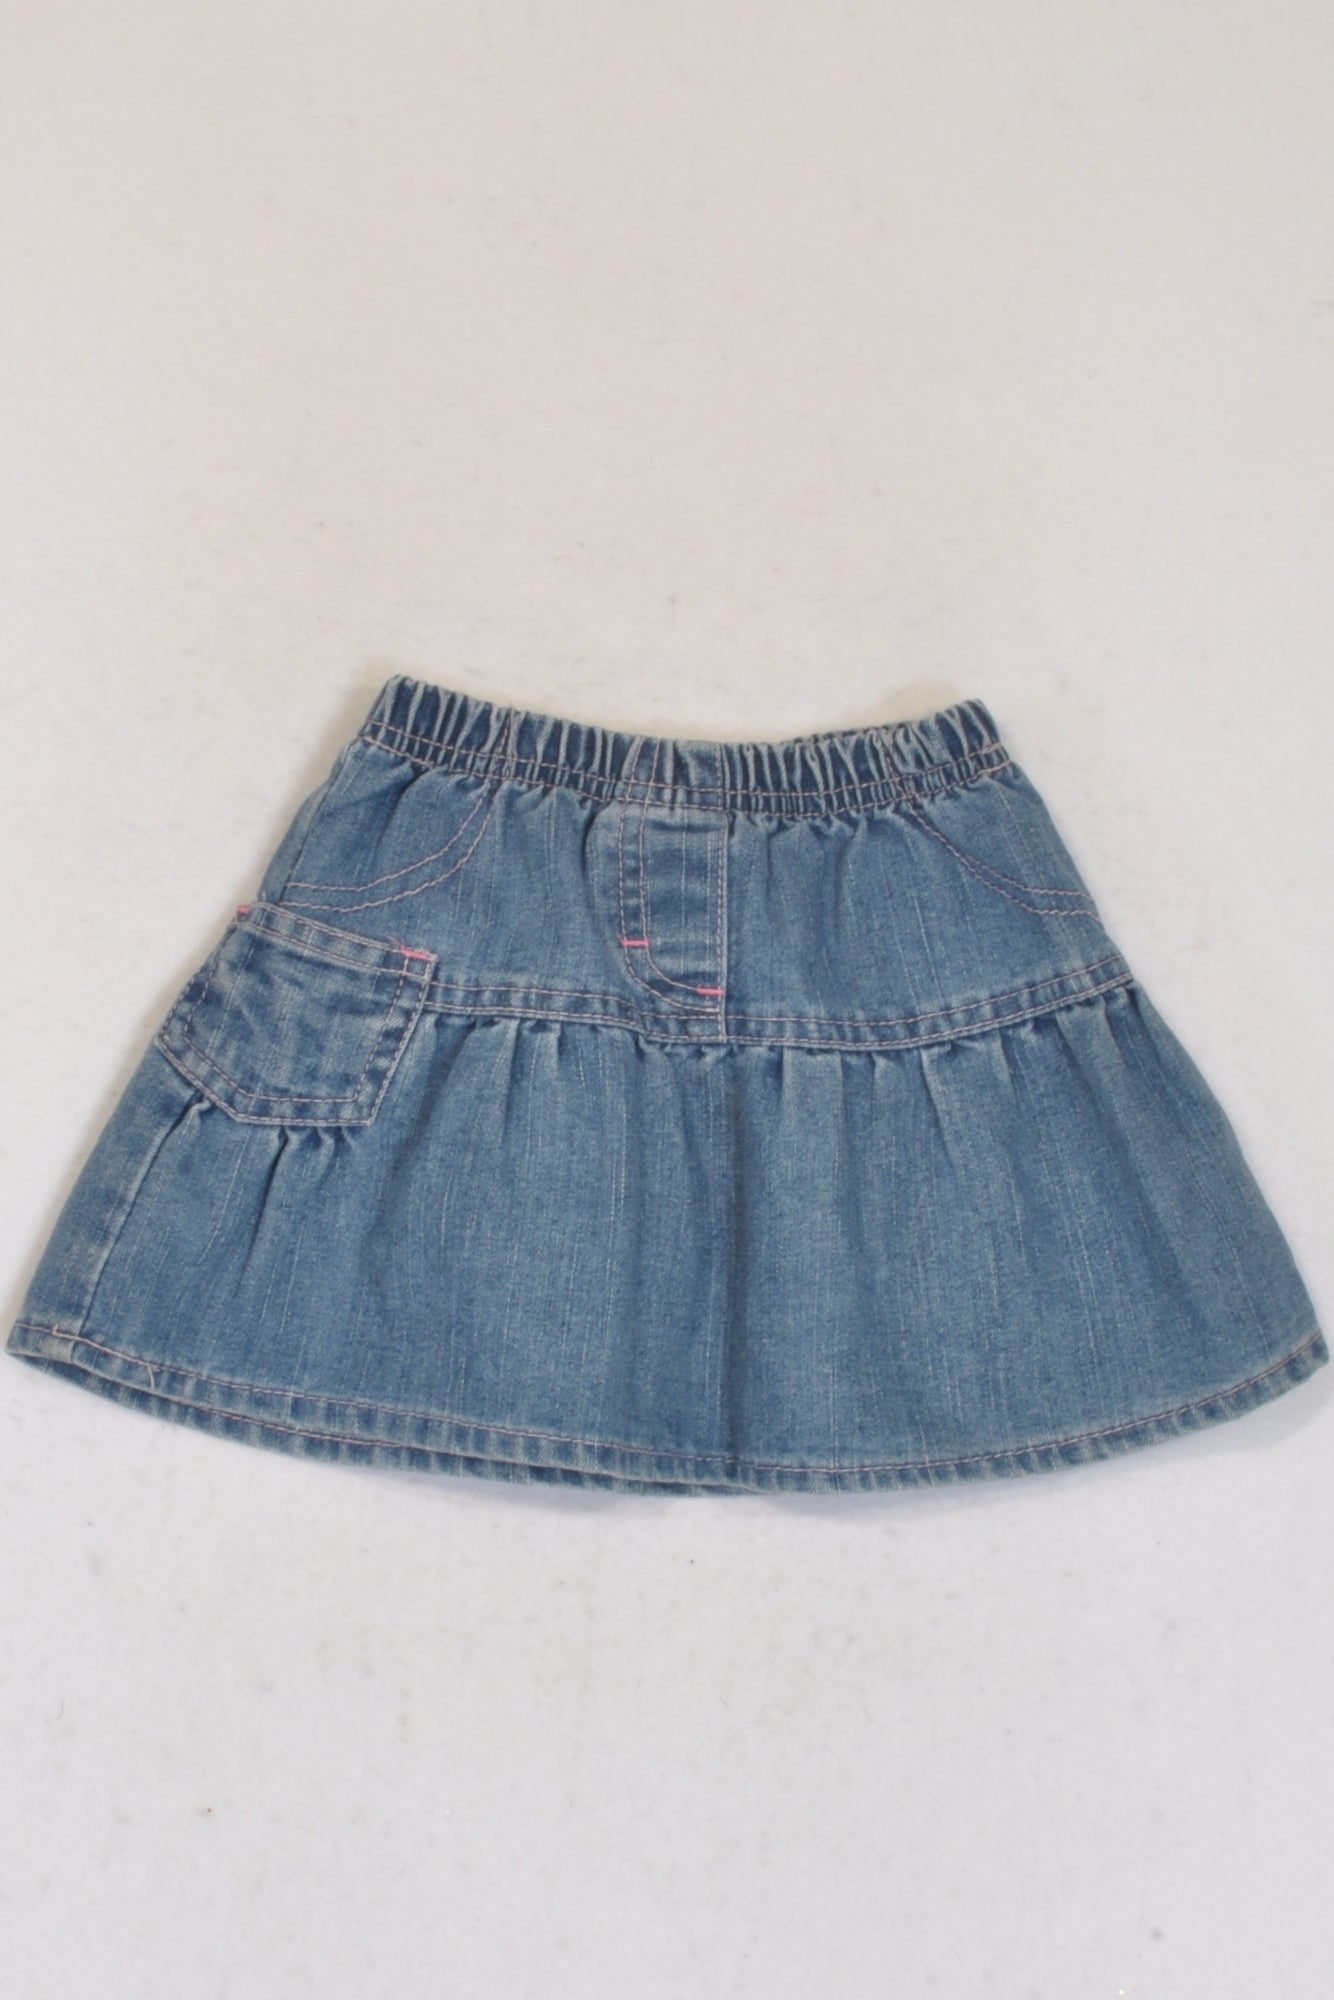 Ackermans Elastic Denim Pleated Skirt Girls 3-6 months